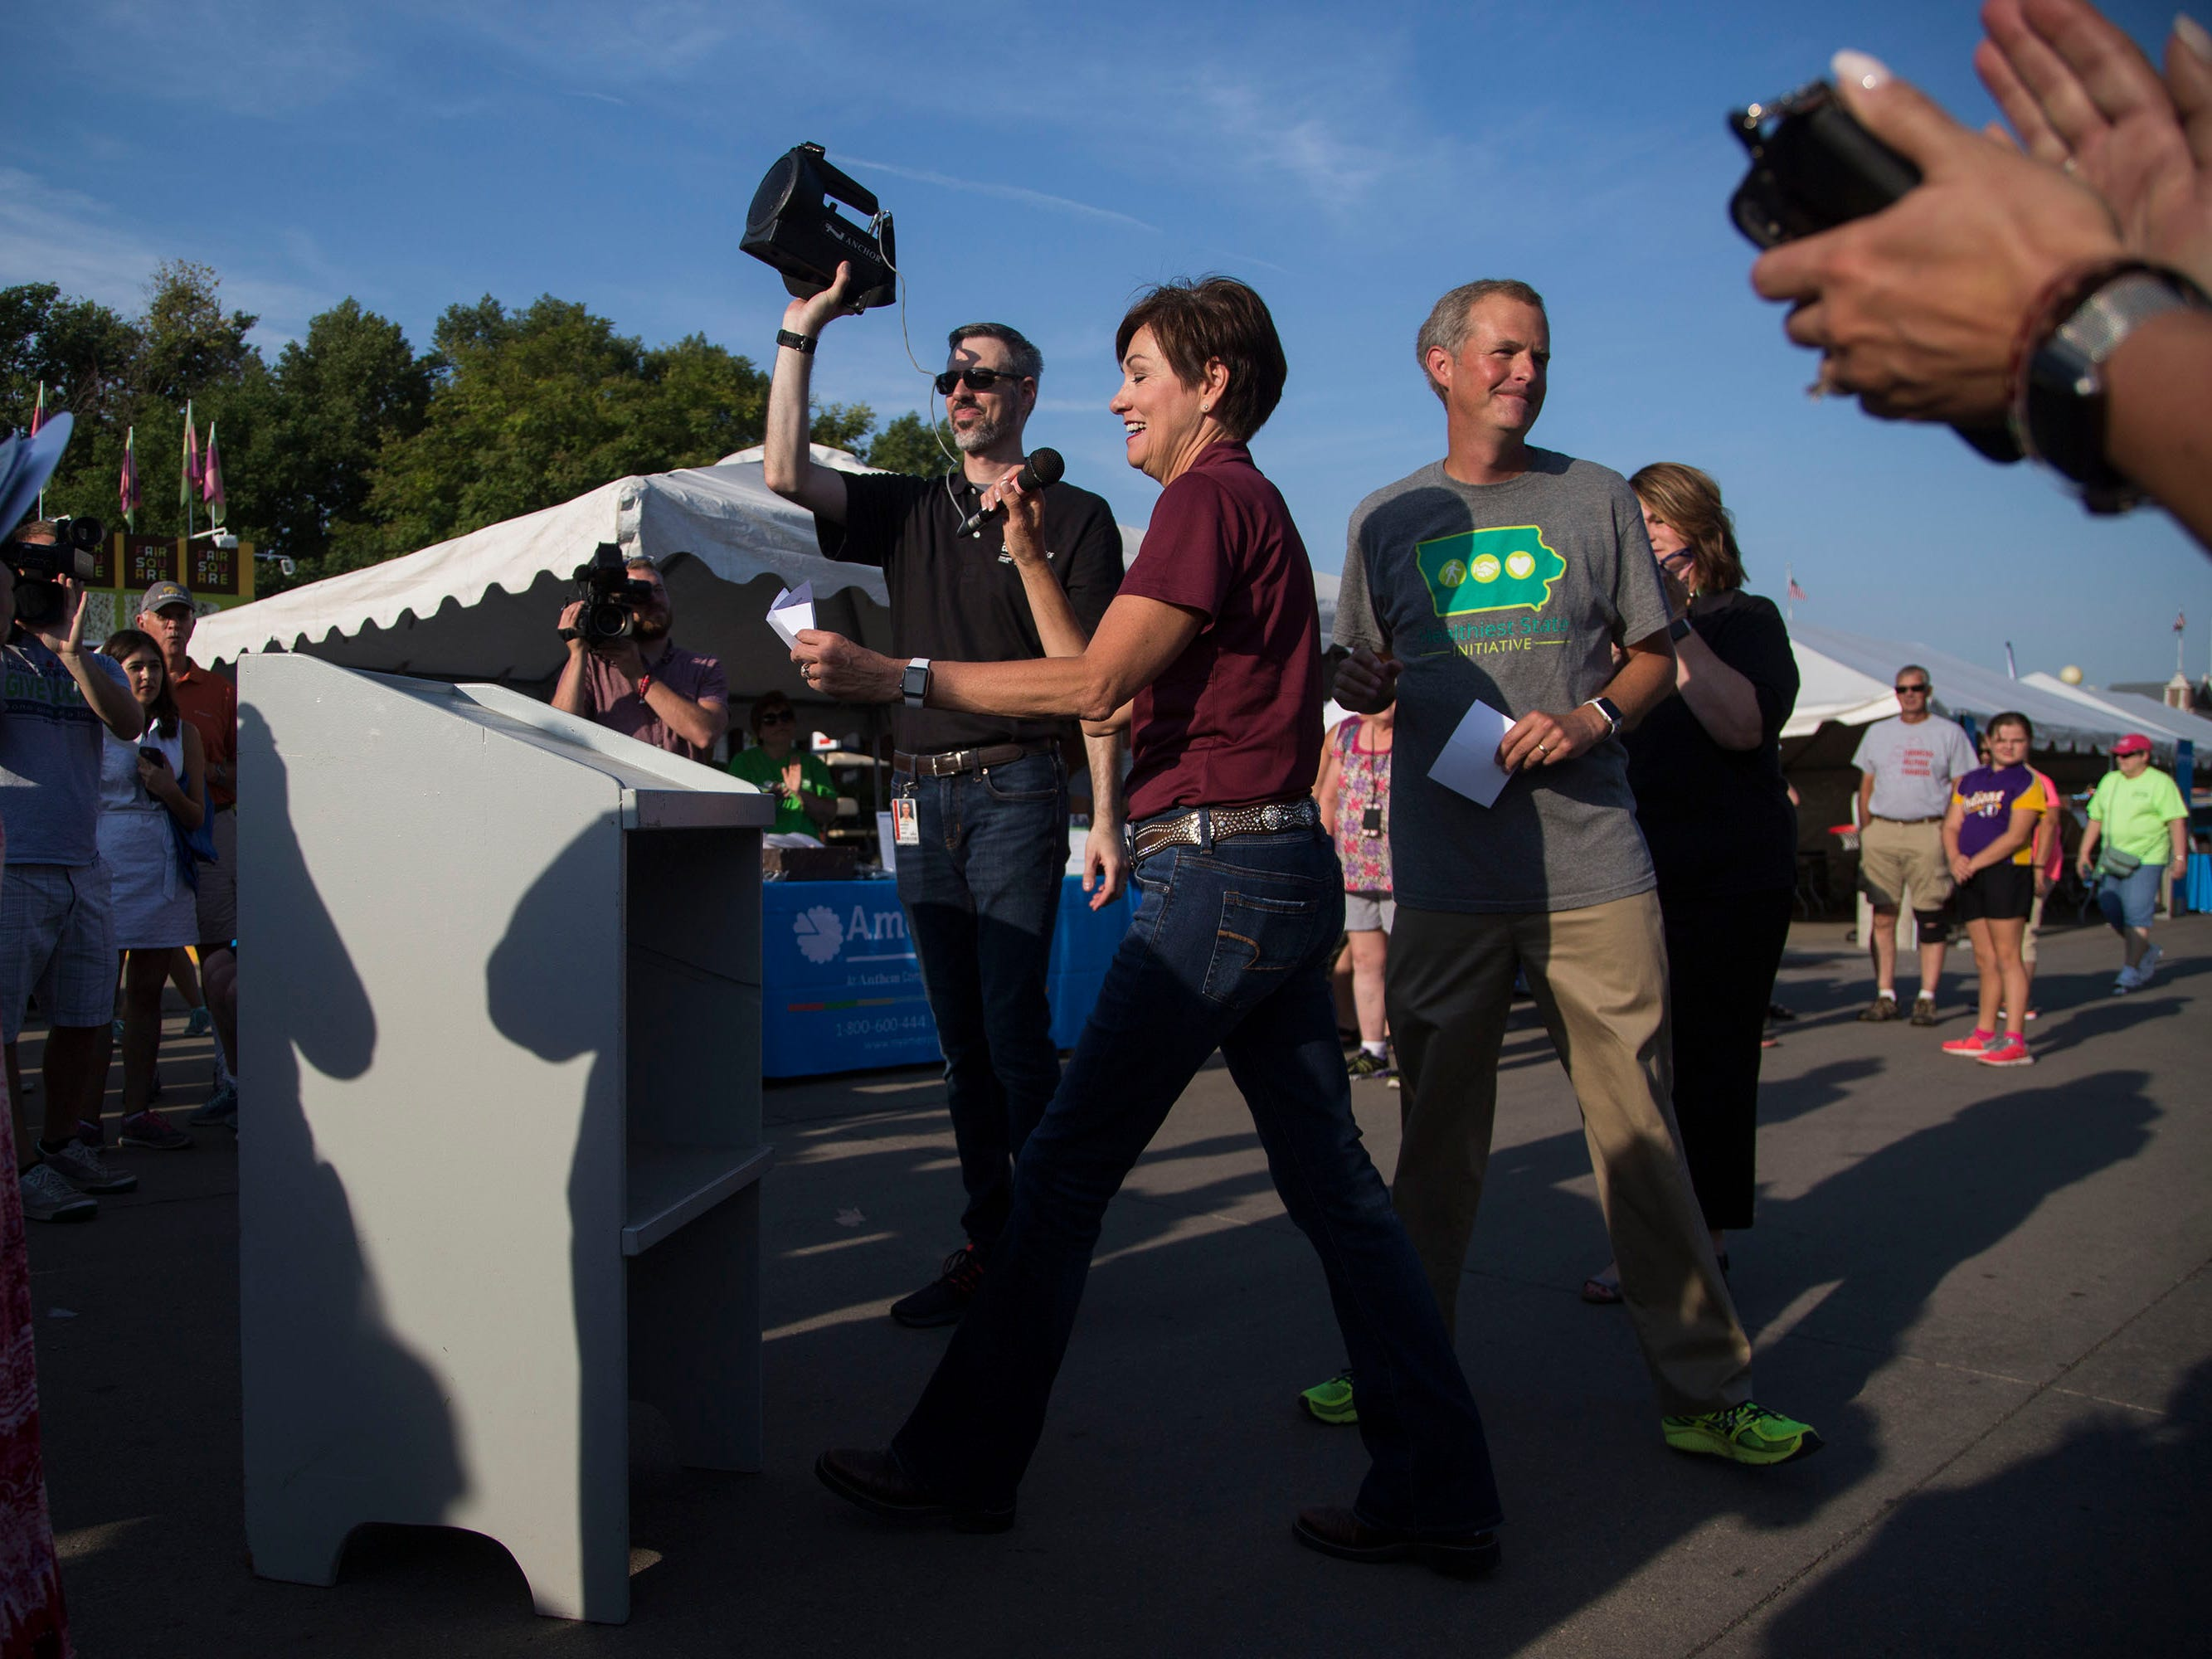 Iowa Governor Kim Reynolds kicks off the first day of the Iowa State Fair with remarks at the start of the historic walking tour on Thursday, Aug. 9, 2018, in Des Moines.